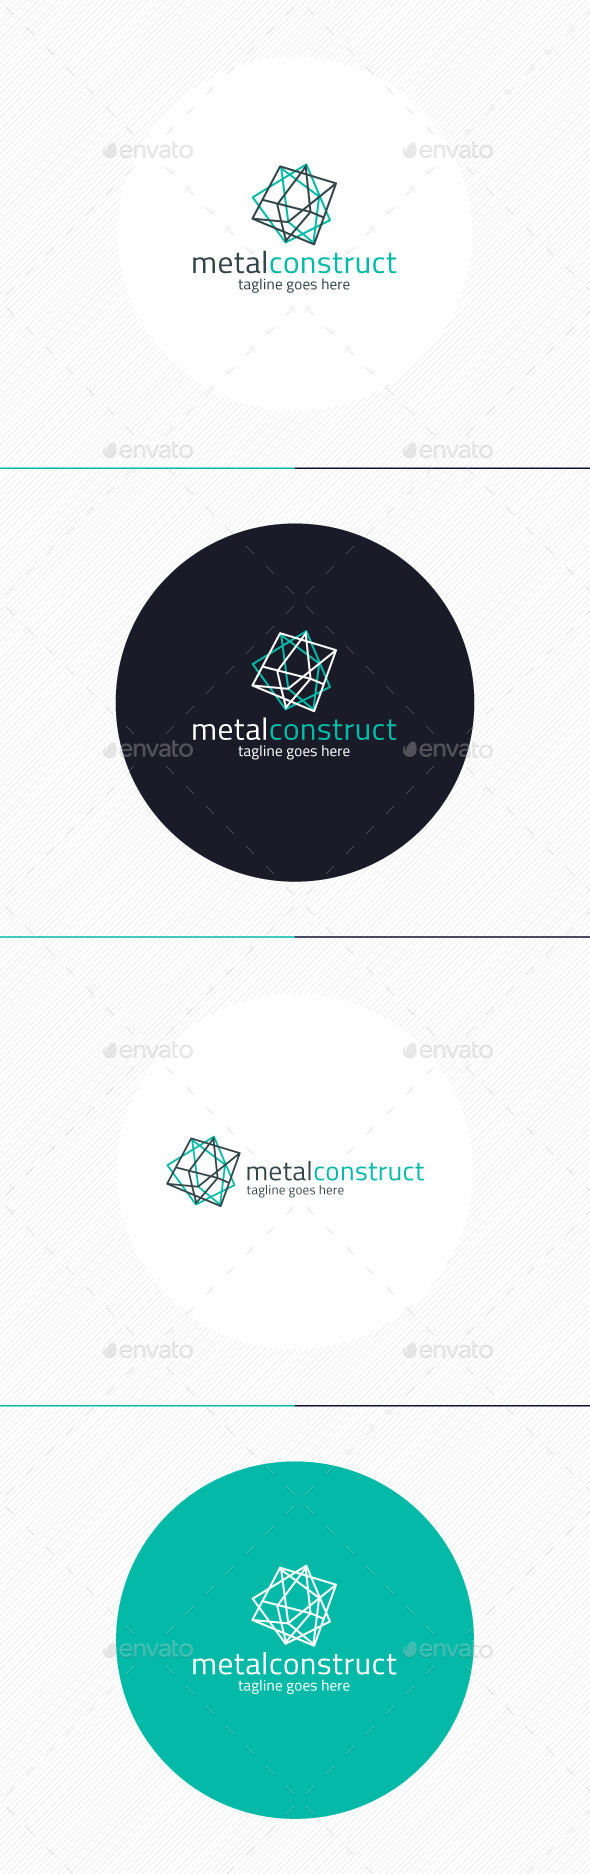 Metal Construct Logo - Vector Abstract